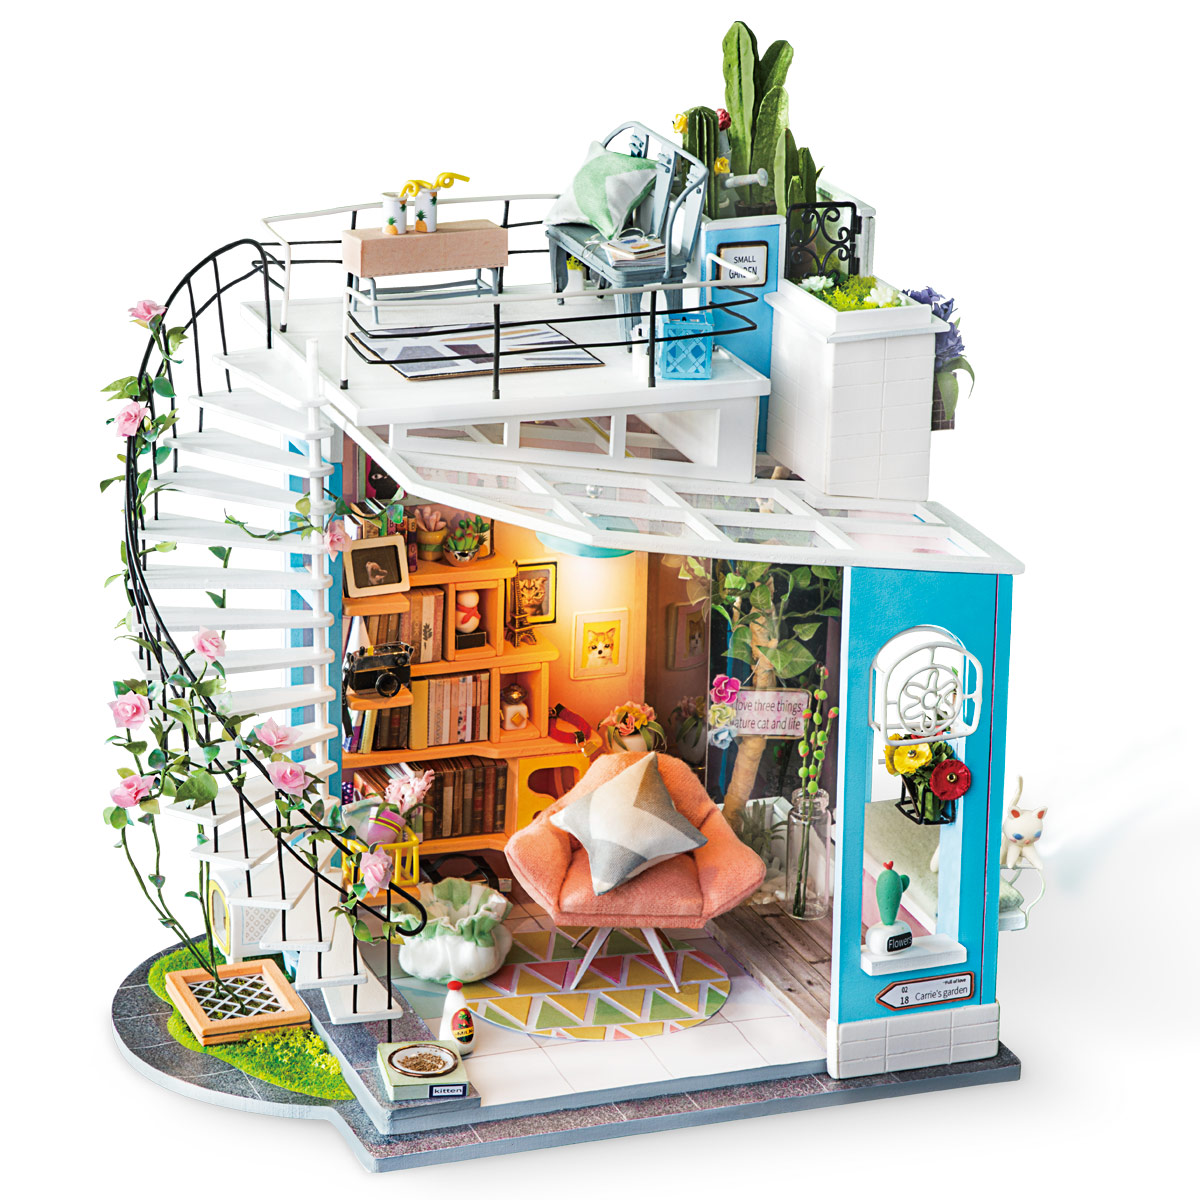 Robotime miniature house kit